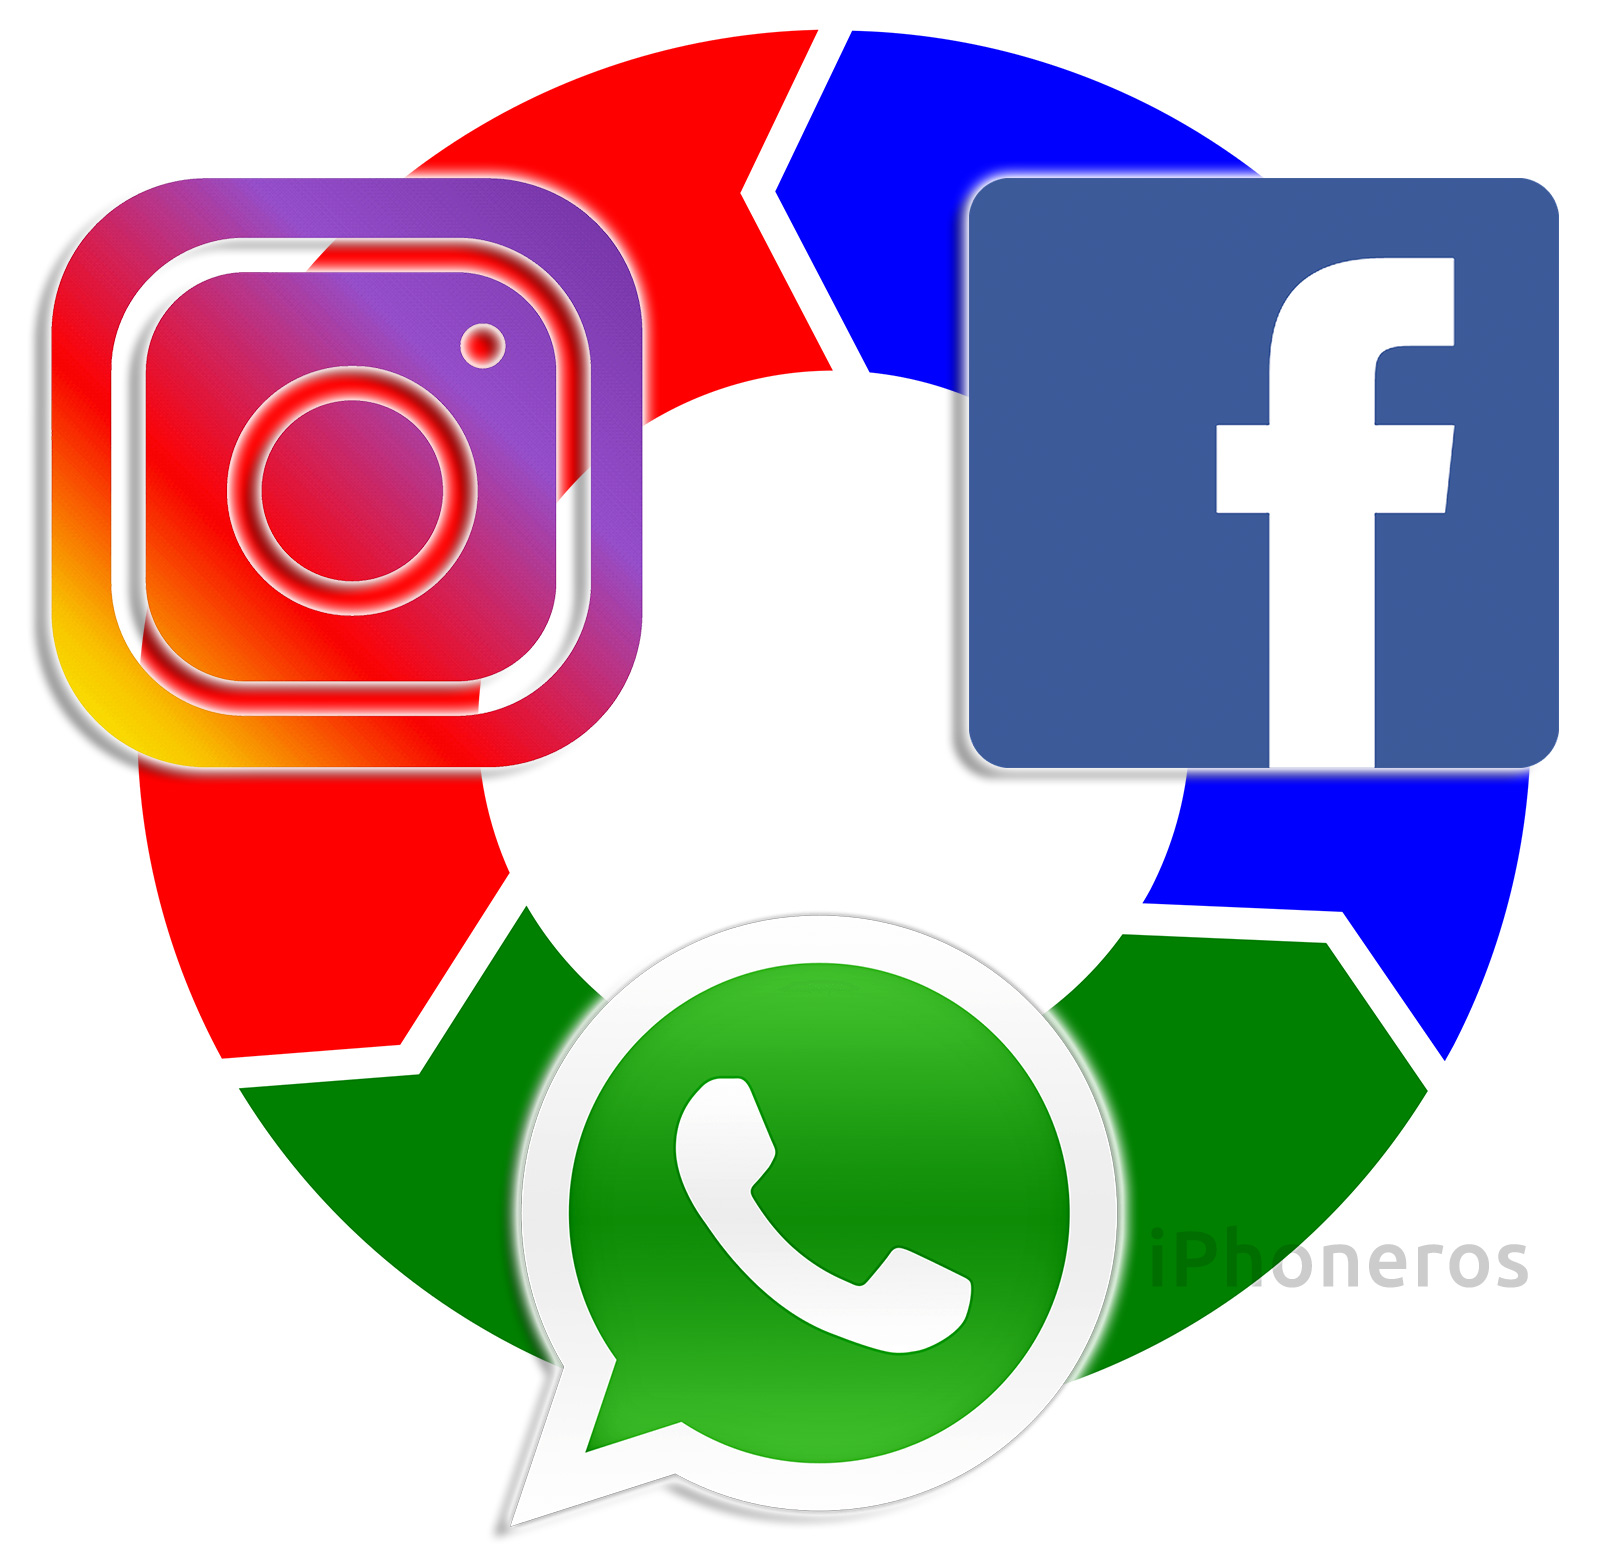 Logos de Instagram, Facebook y WhatsApp interconectados